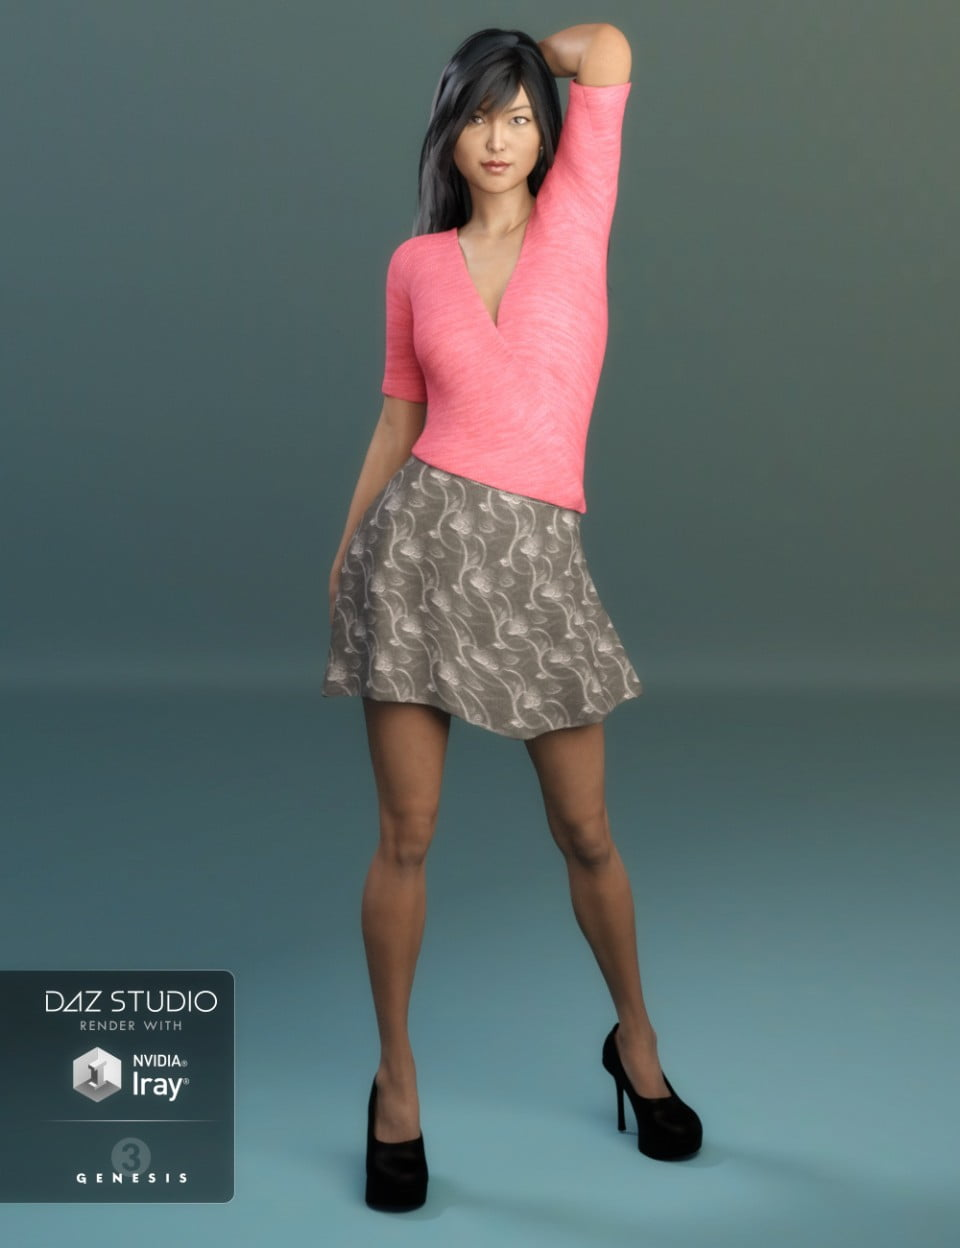 00-main-flair-outfit-for-genesis-3-females-daz3d